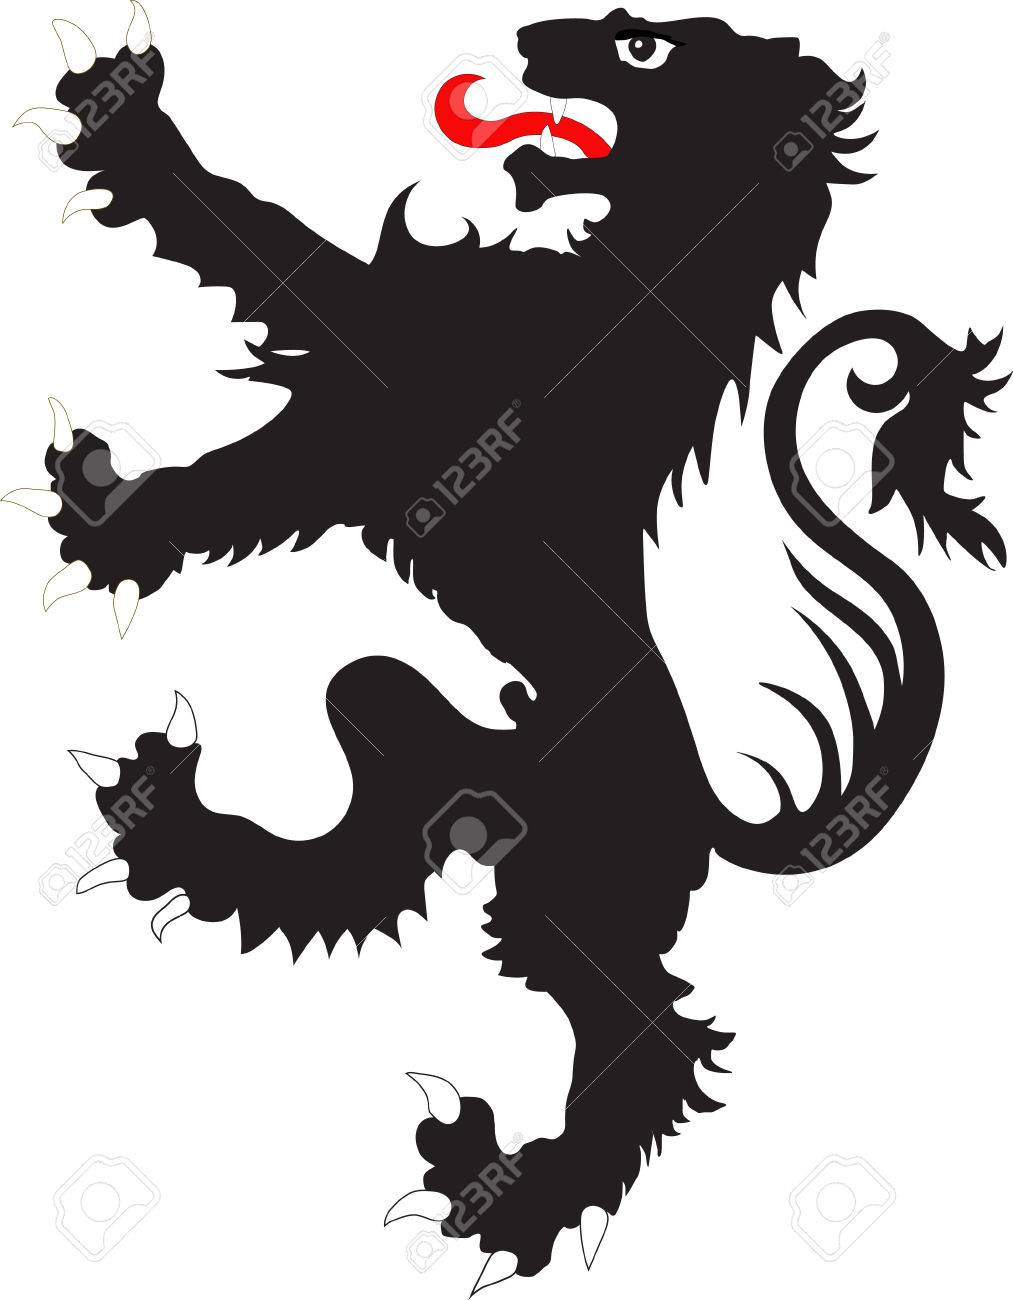 The Rebels Lion The Heraldic Symbol Used In The Flags And Coats